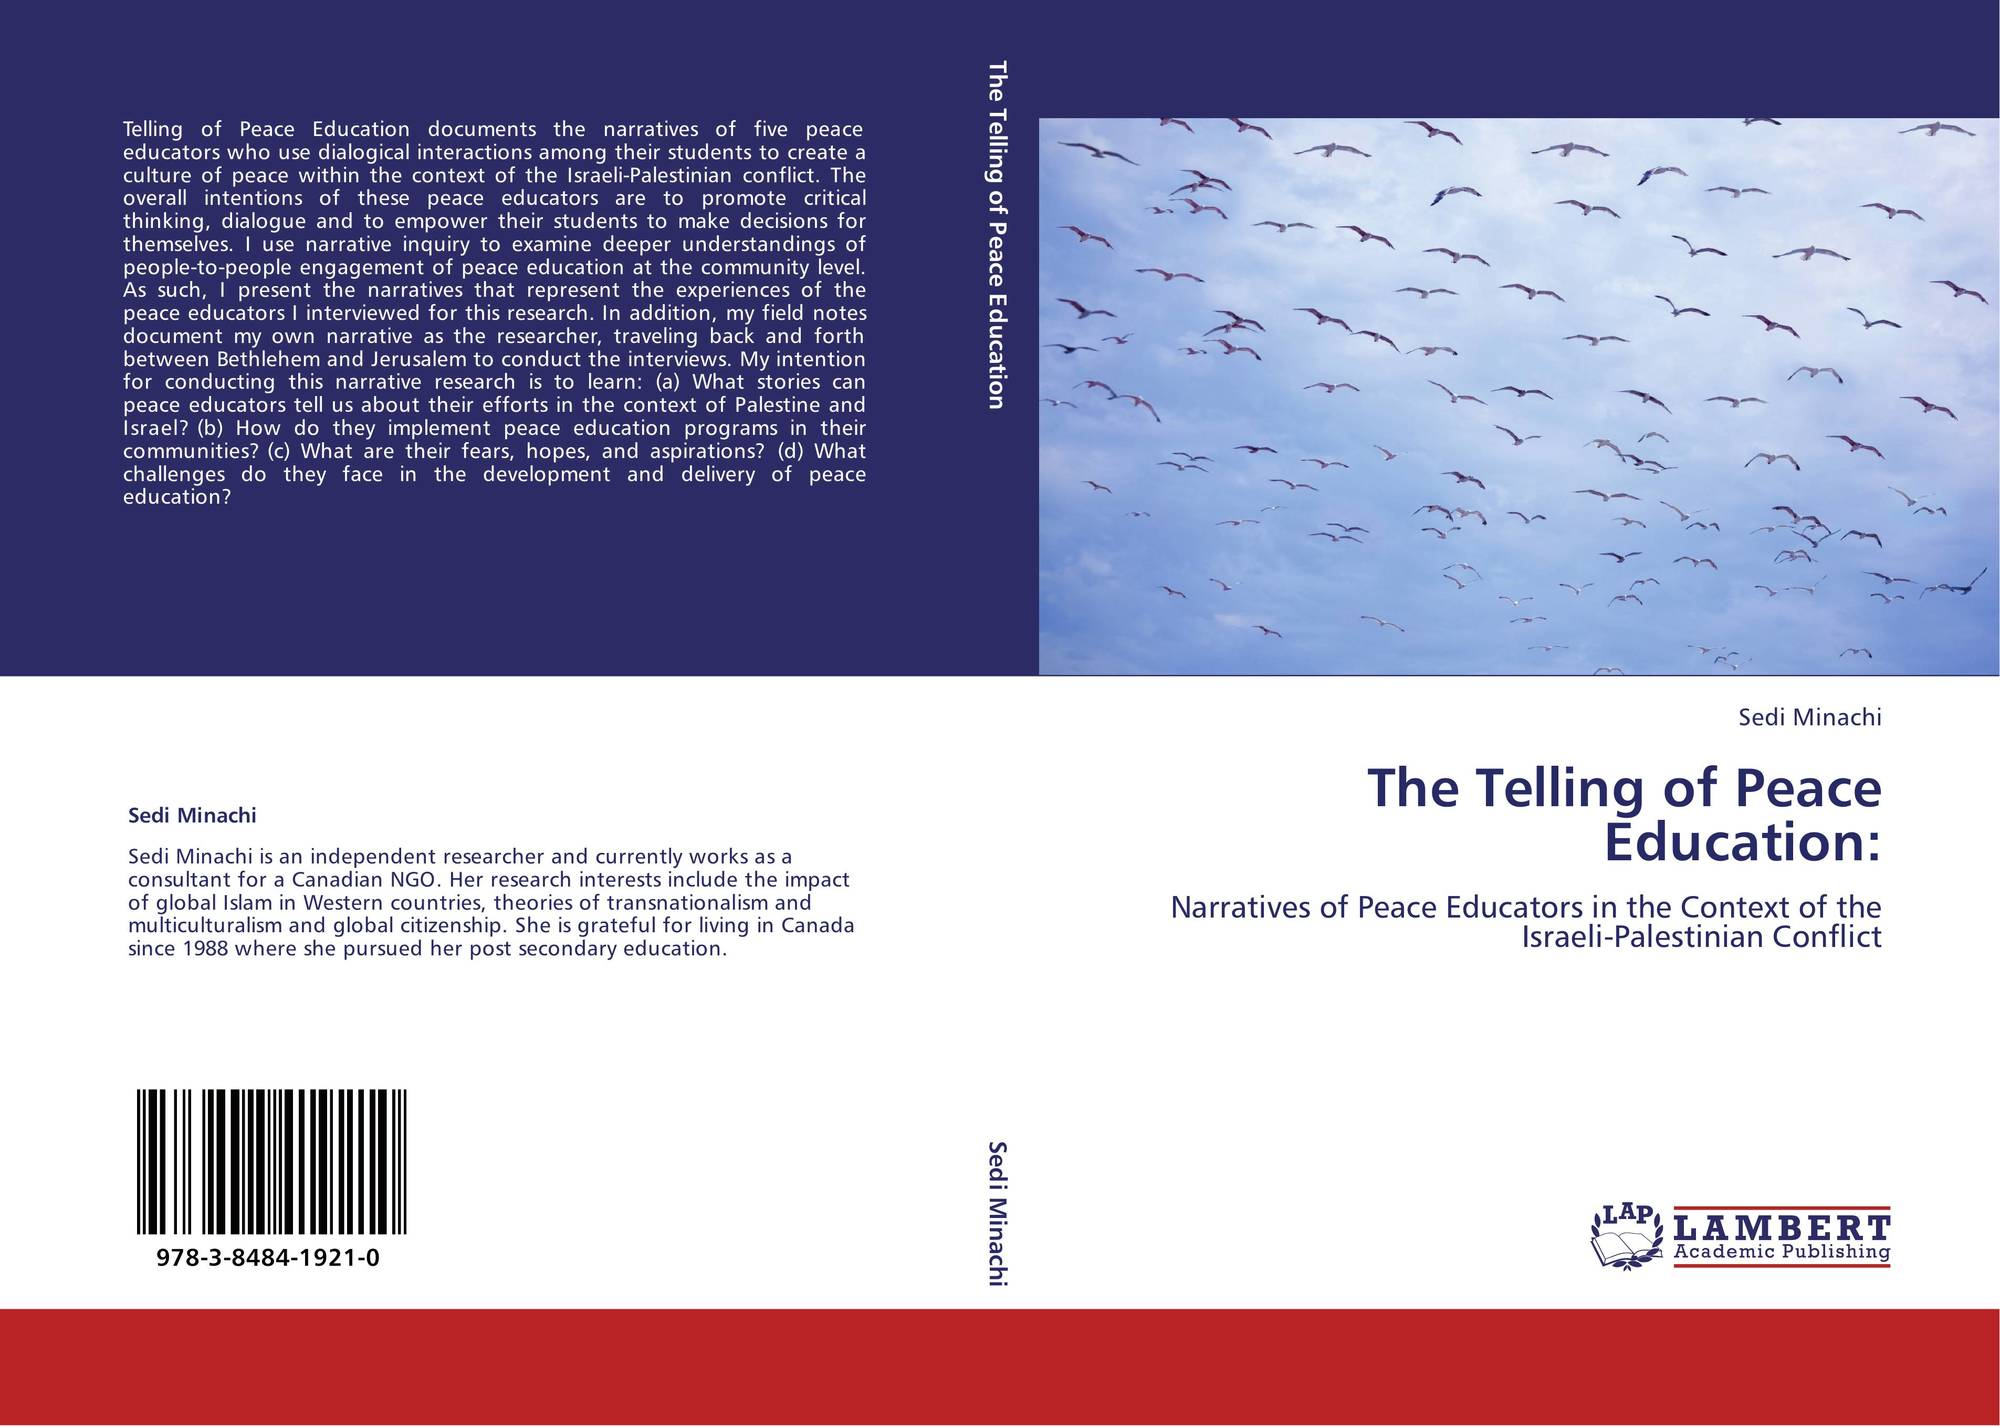 research work on peace education